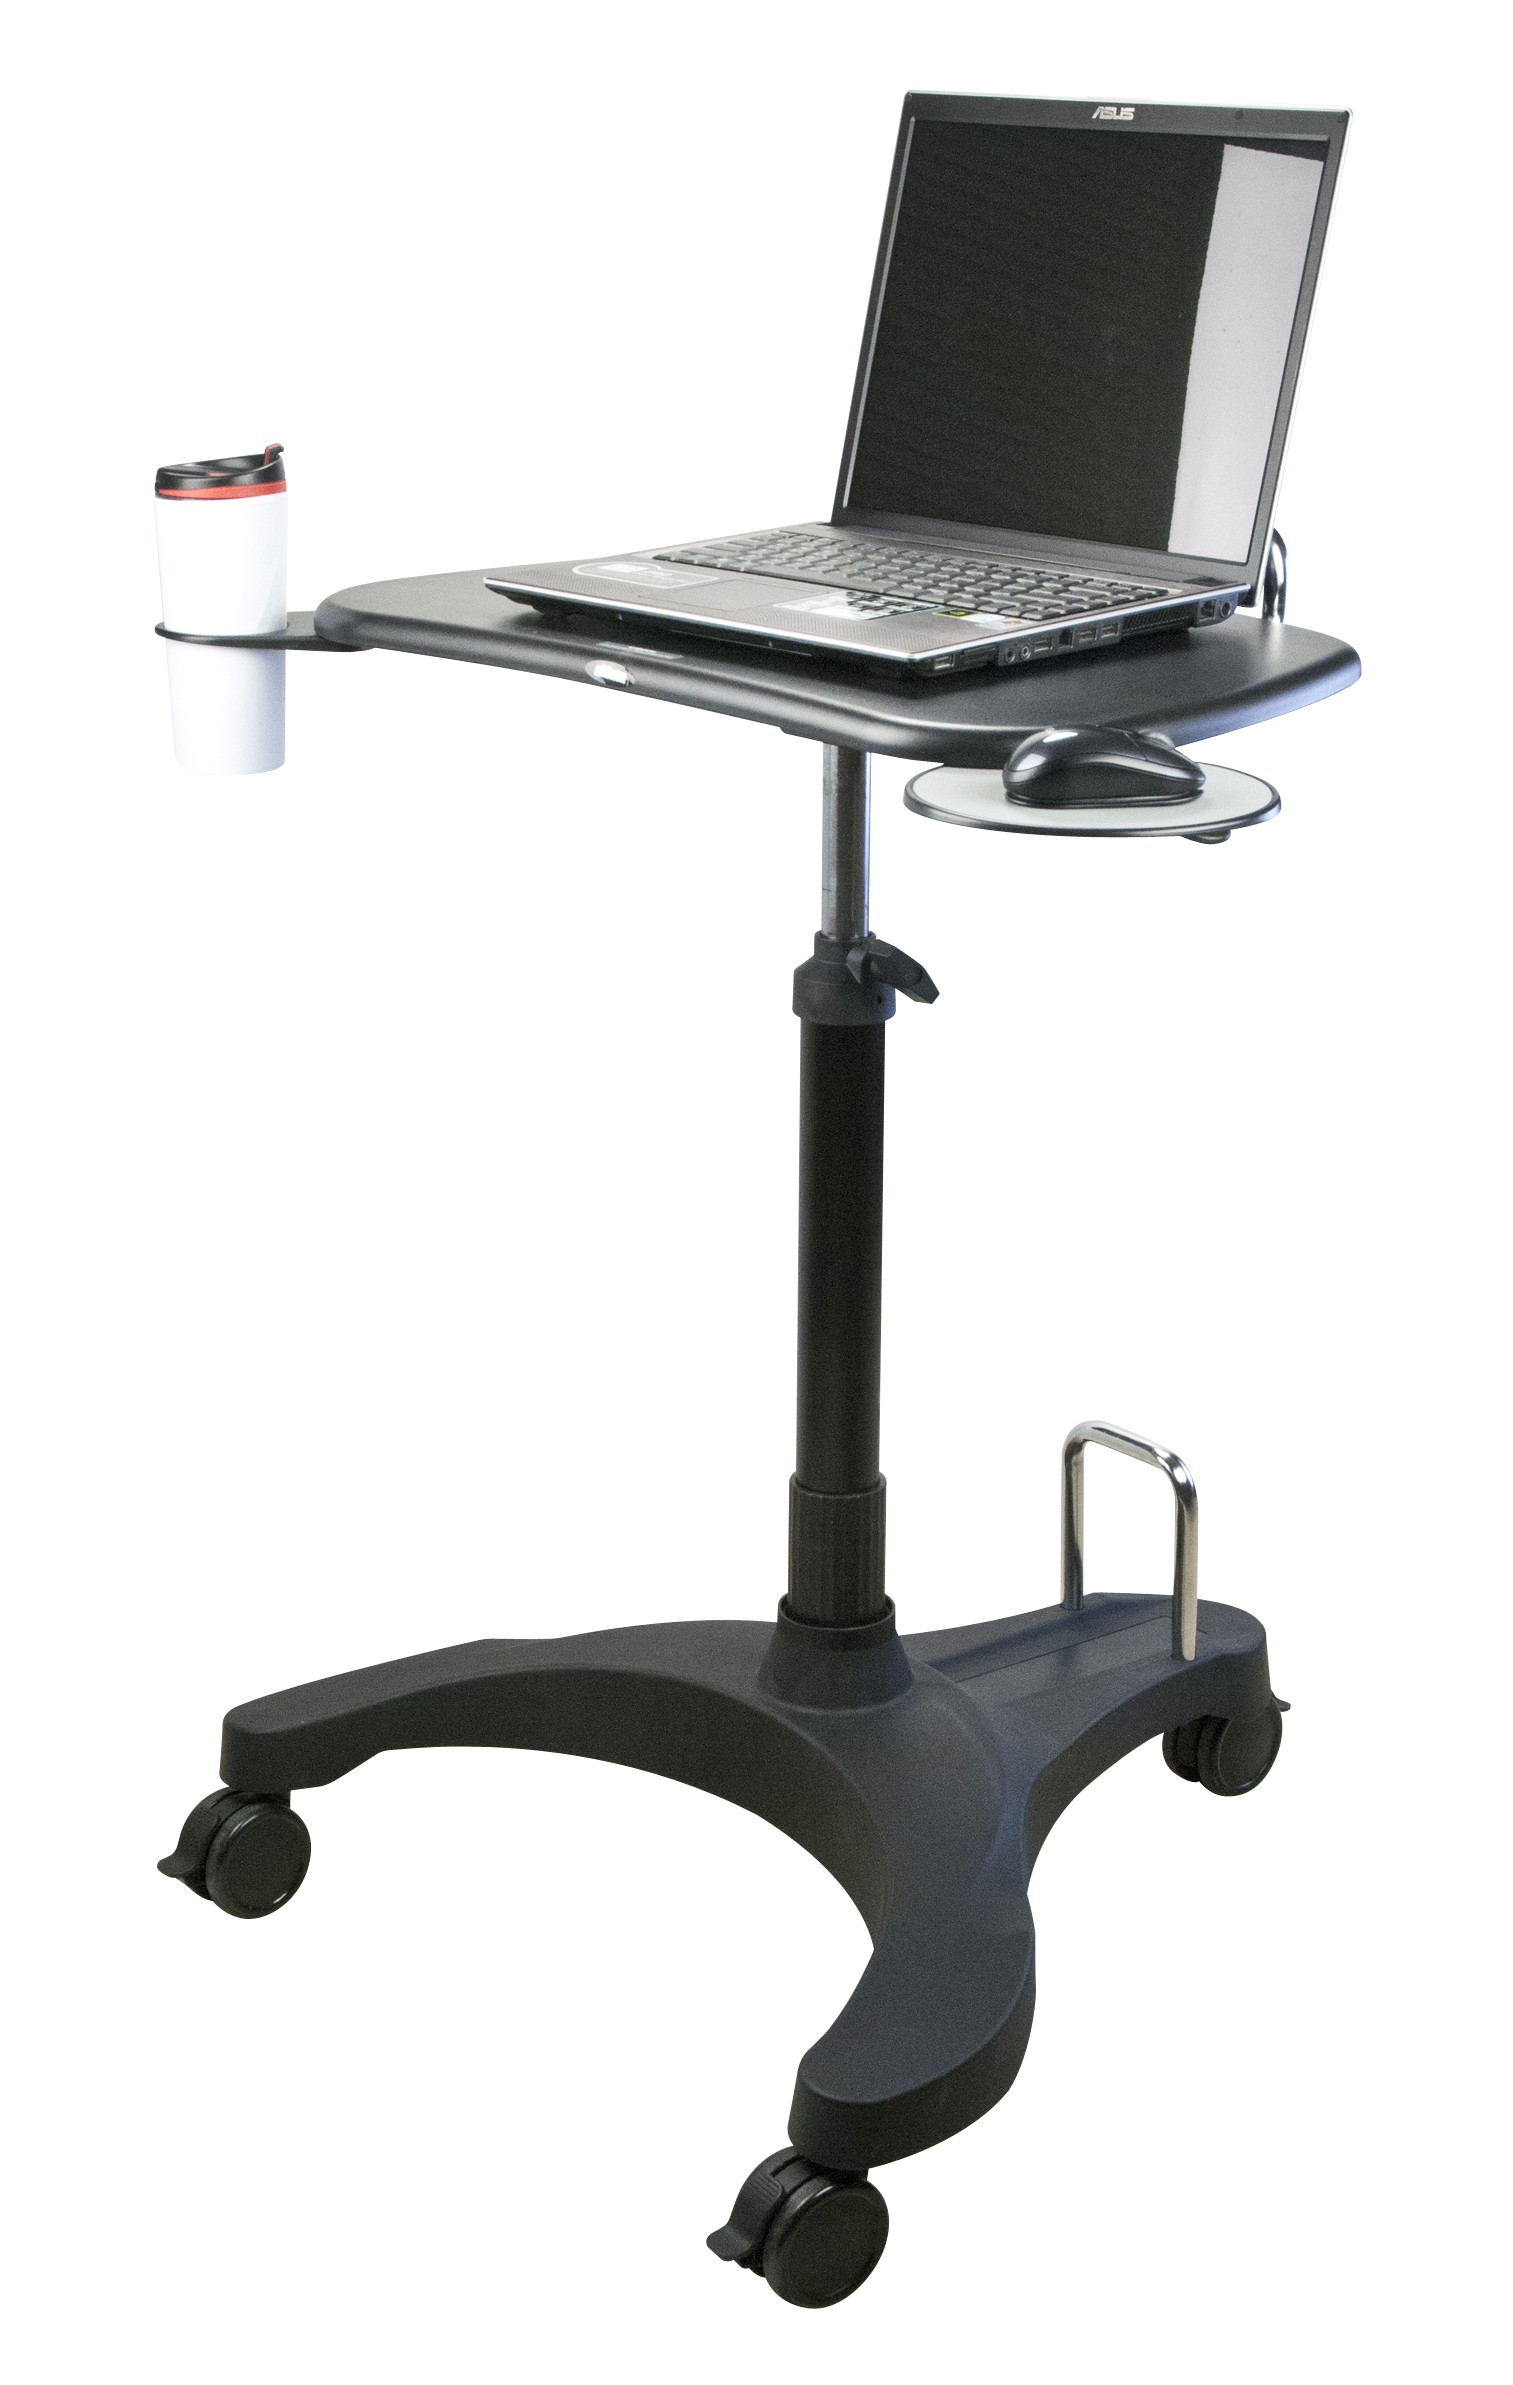 Upanatom sit stand mobile laptop desk paramount business for Mobile computer ikea